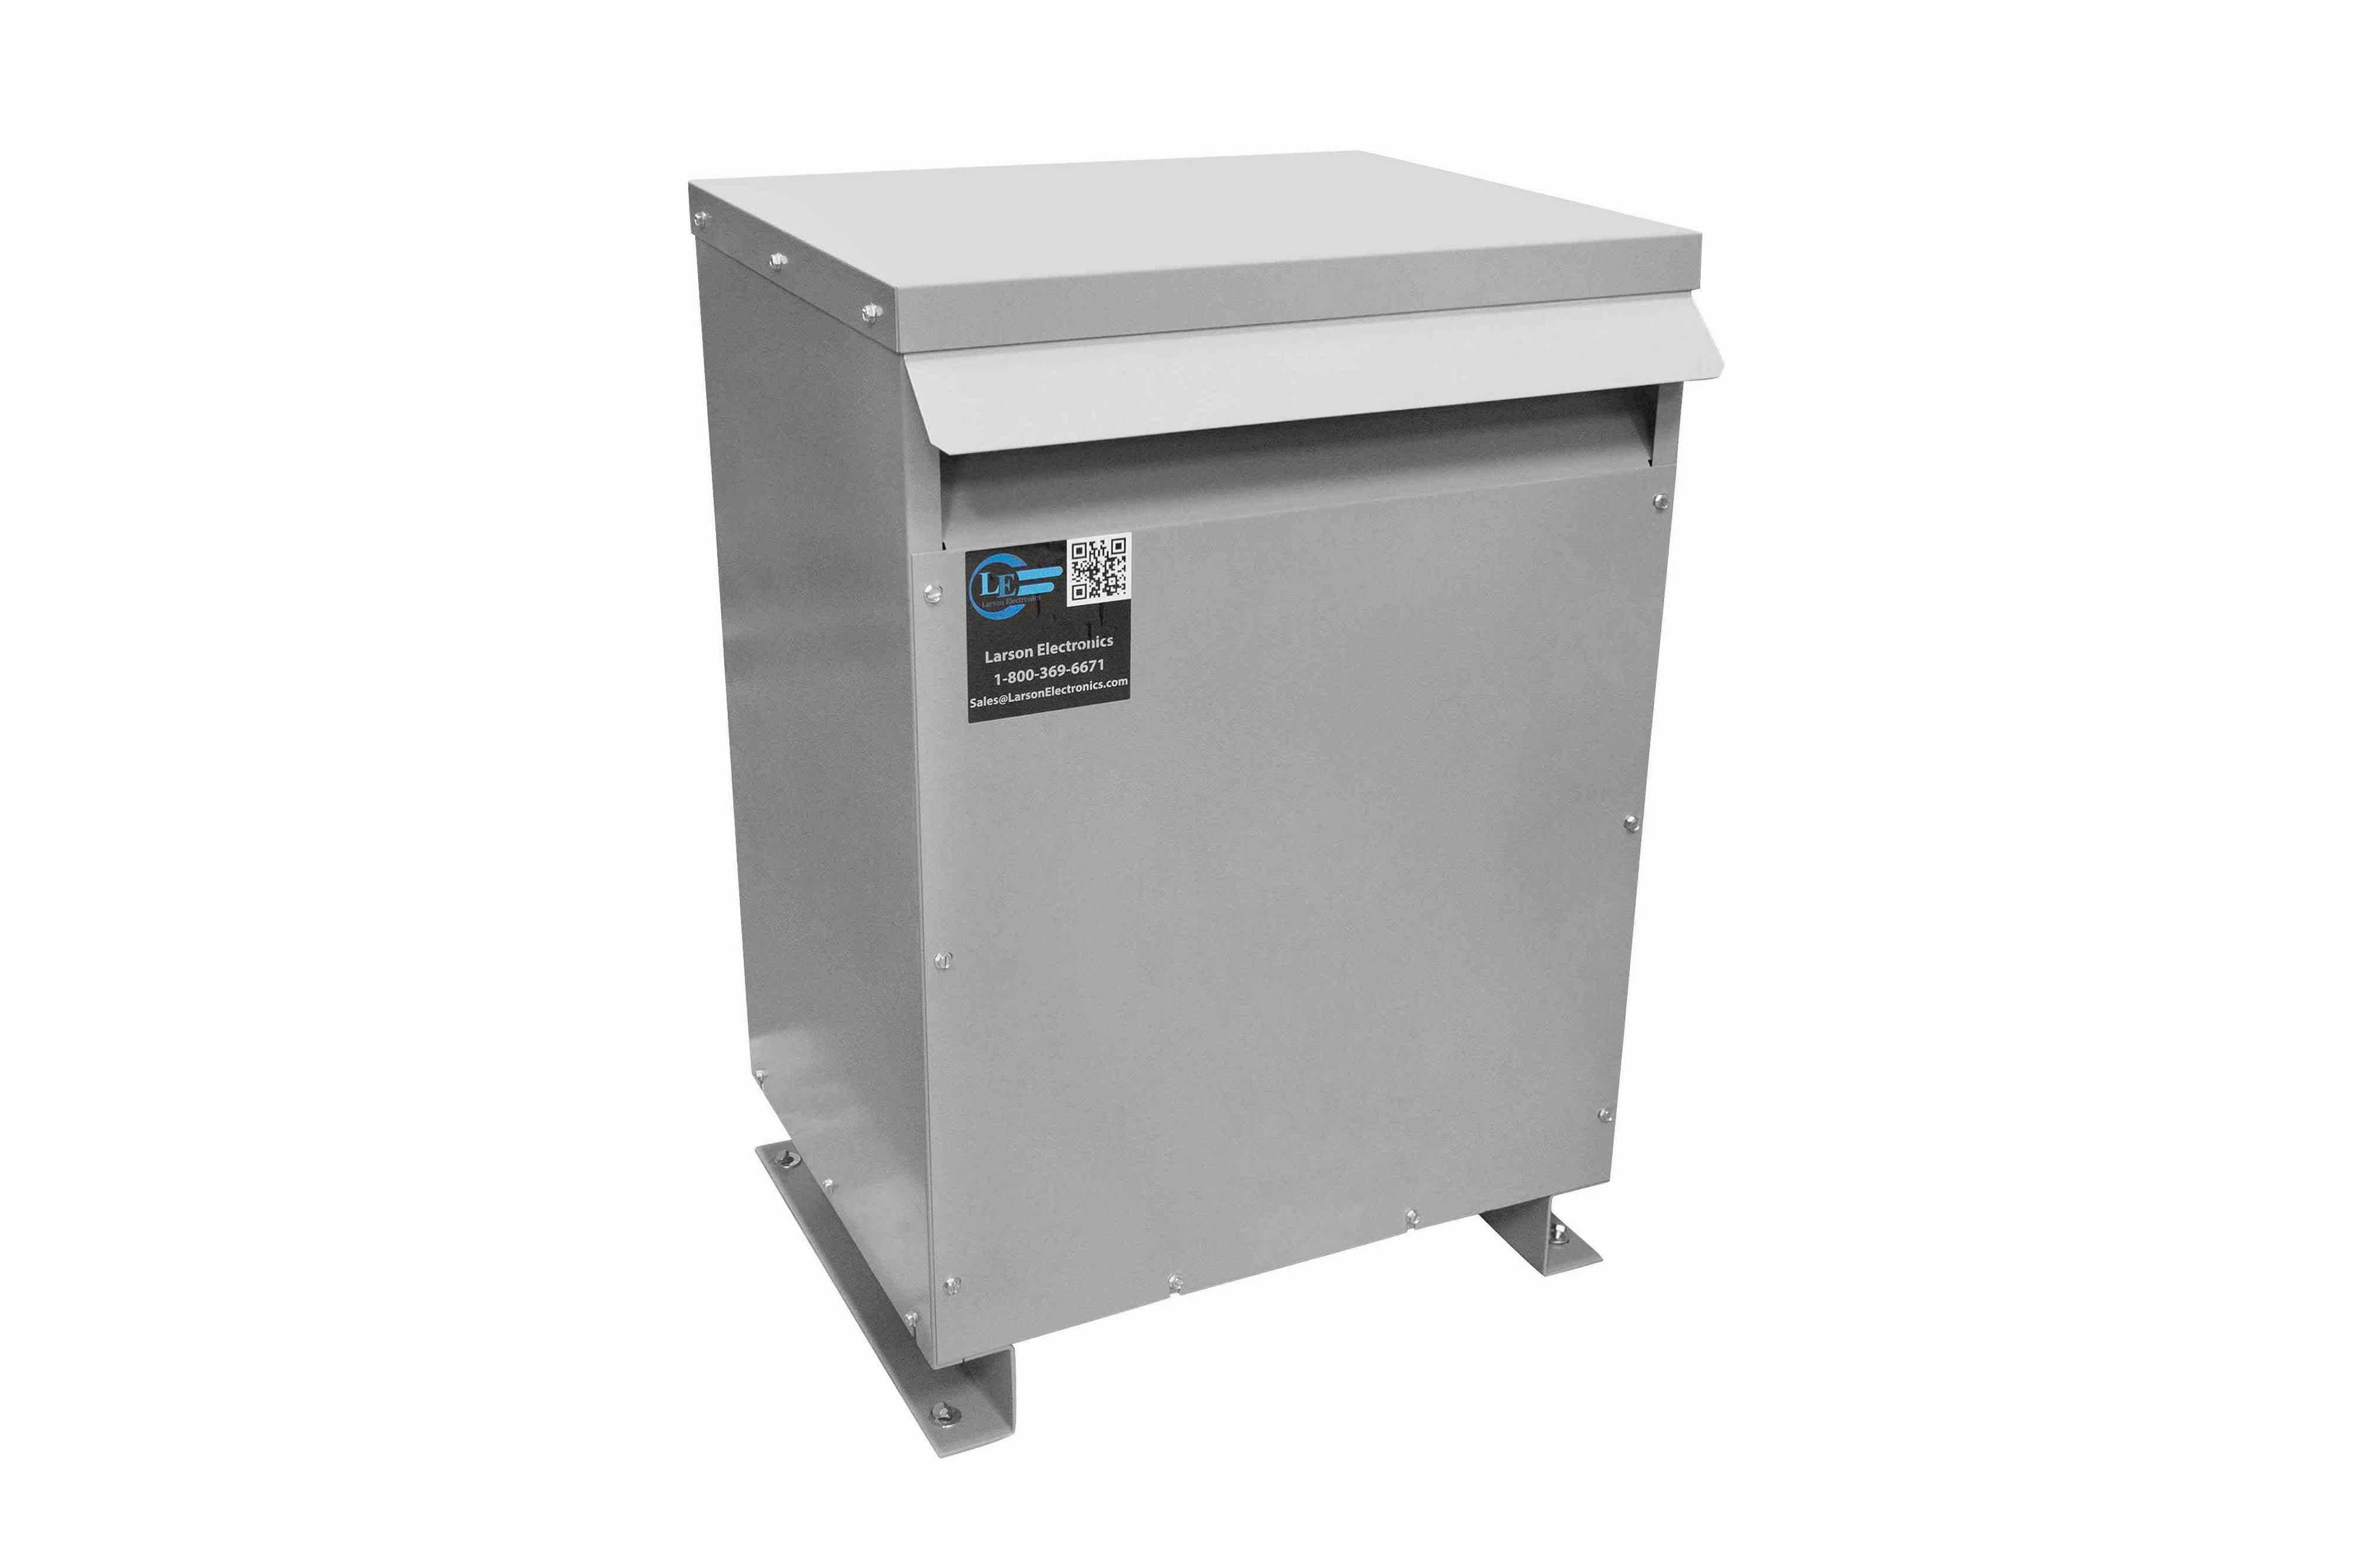 22.5 kVA 3PH Isolation Transformer, 480V Delta Primary, 208V Delta Secondary, N3R, Ventilated, 60 Hz